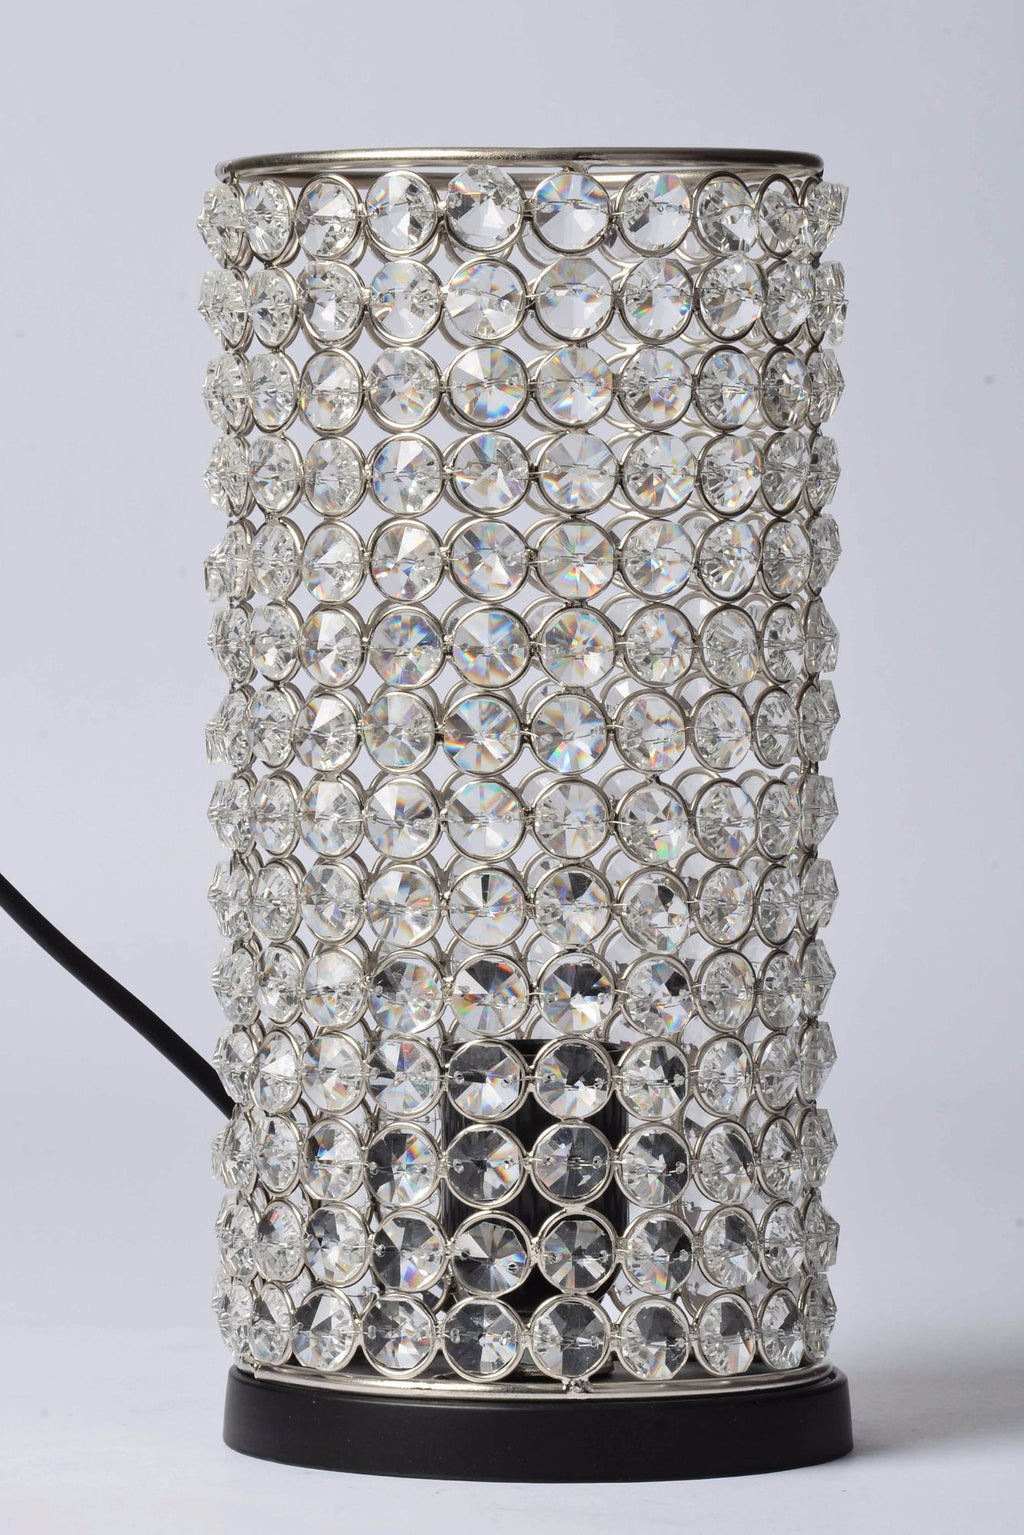 Delilah - Glass Crystals Beads Table Lamp - Column Simply Roka